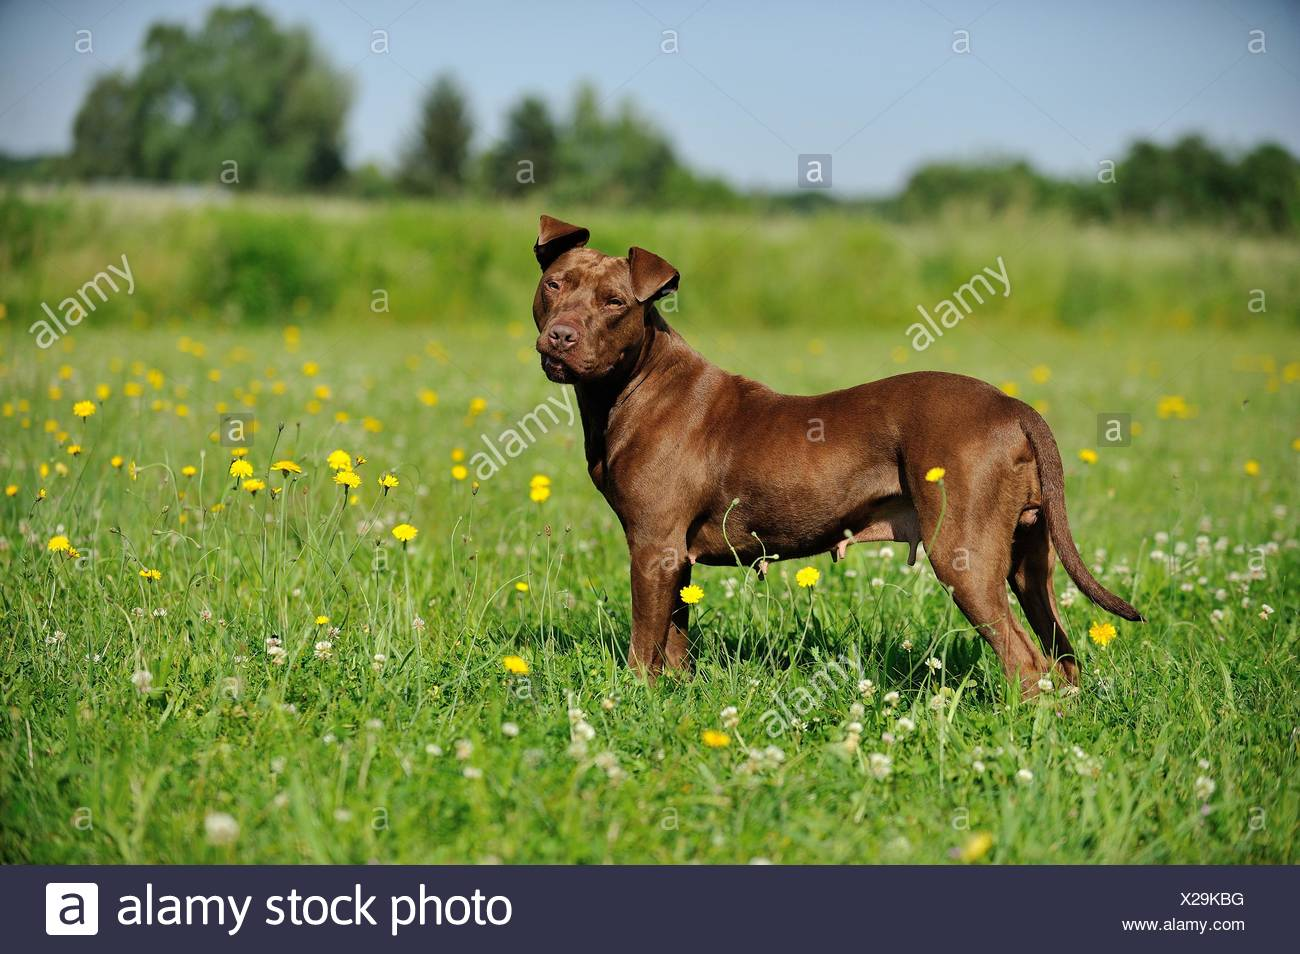 standing American Pit Bull Terrier - Stock Image